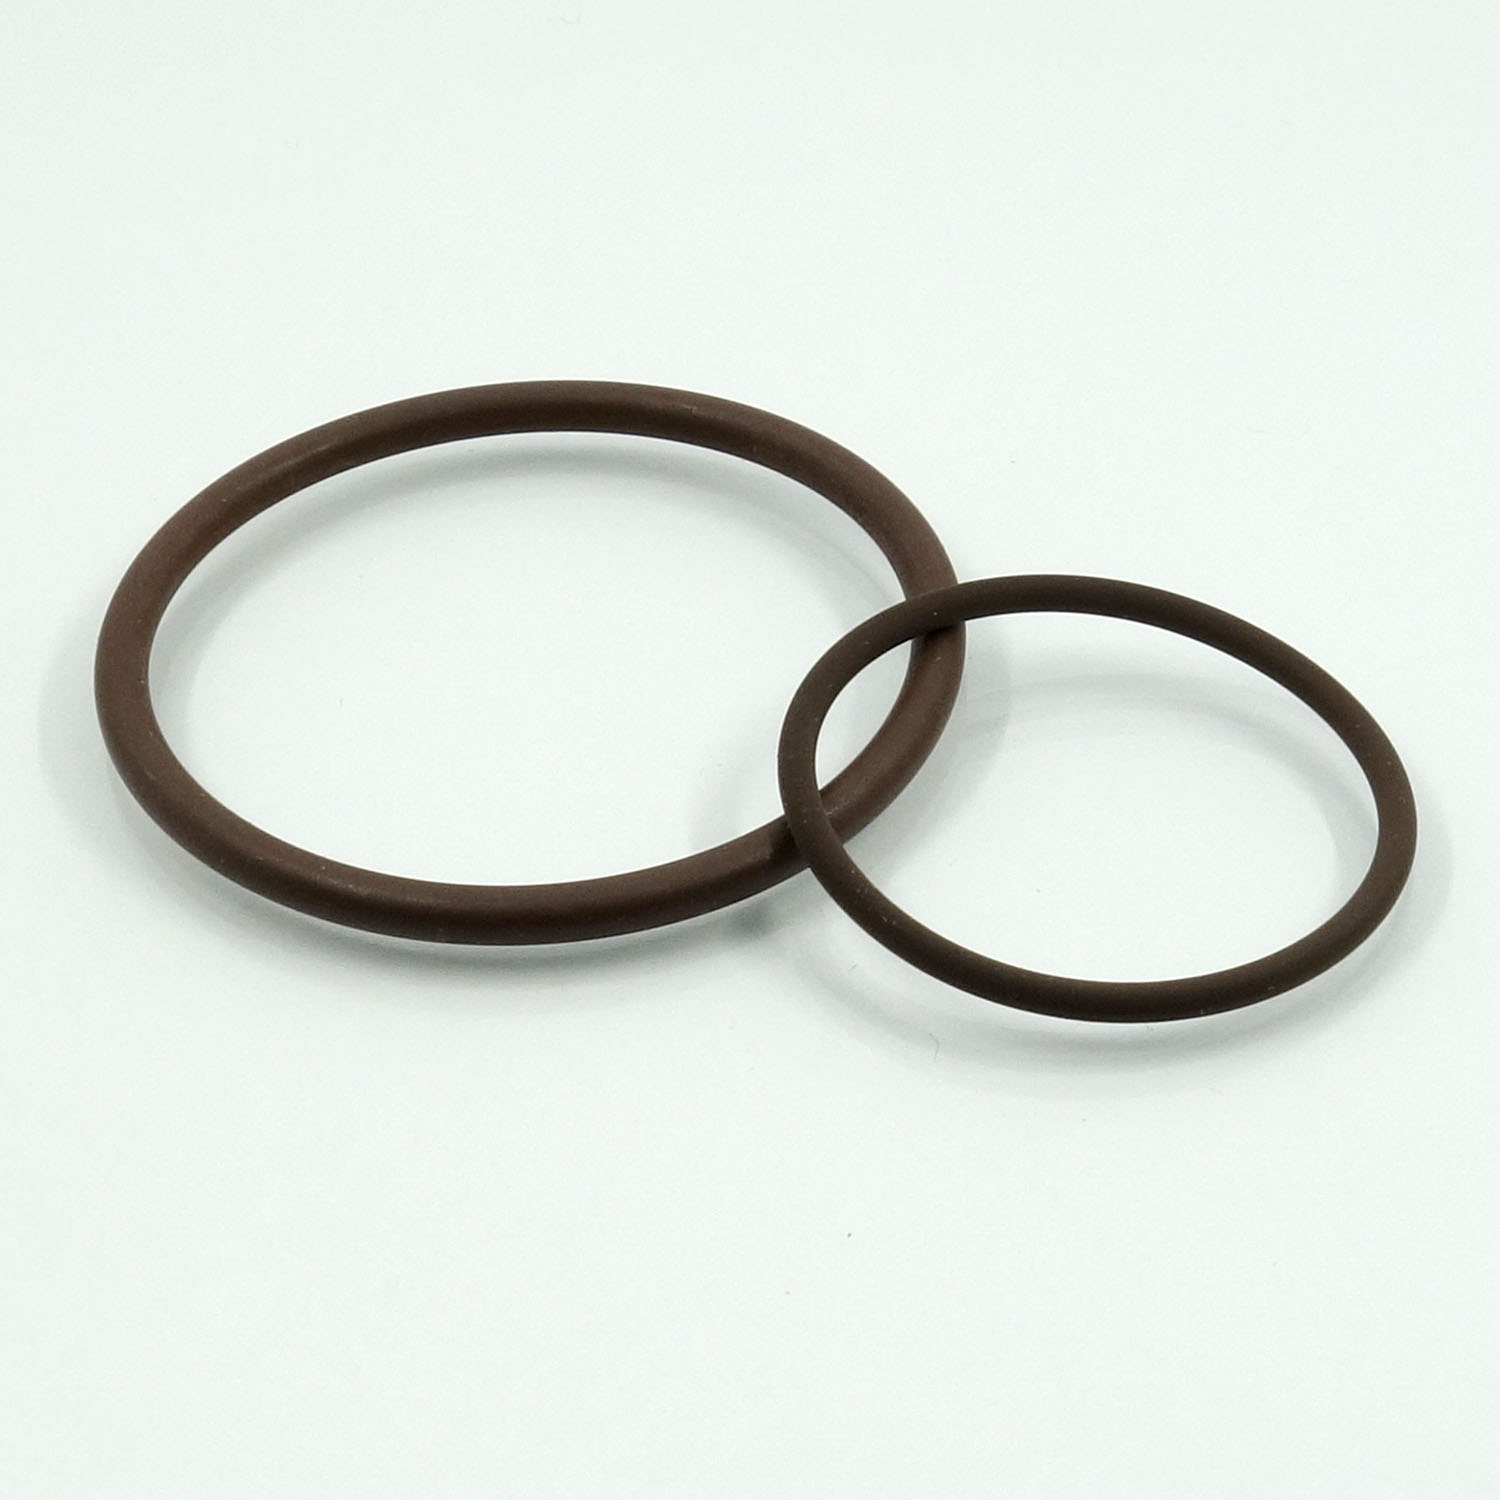 INTERNAL GASKET KIT